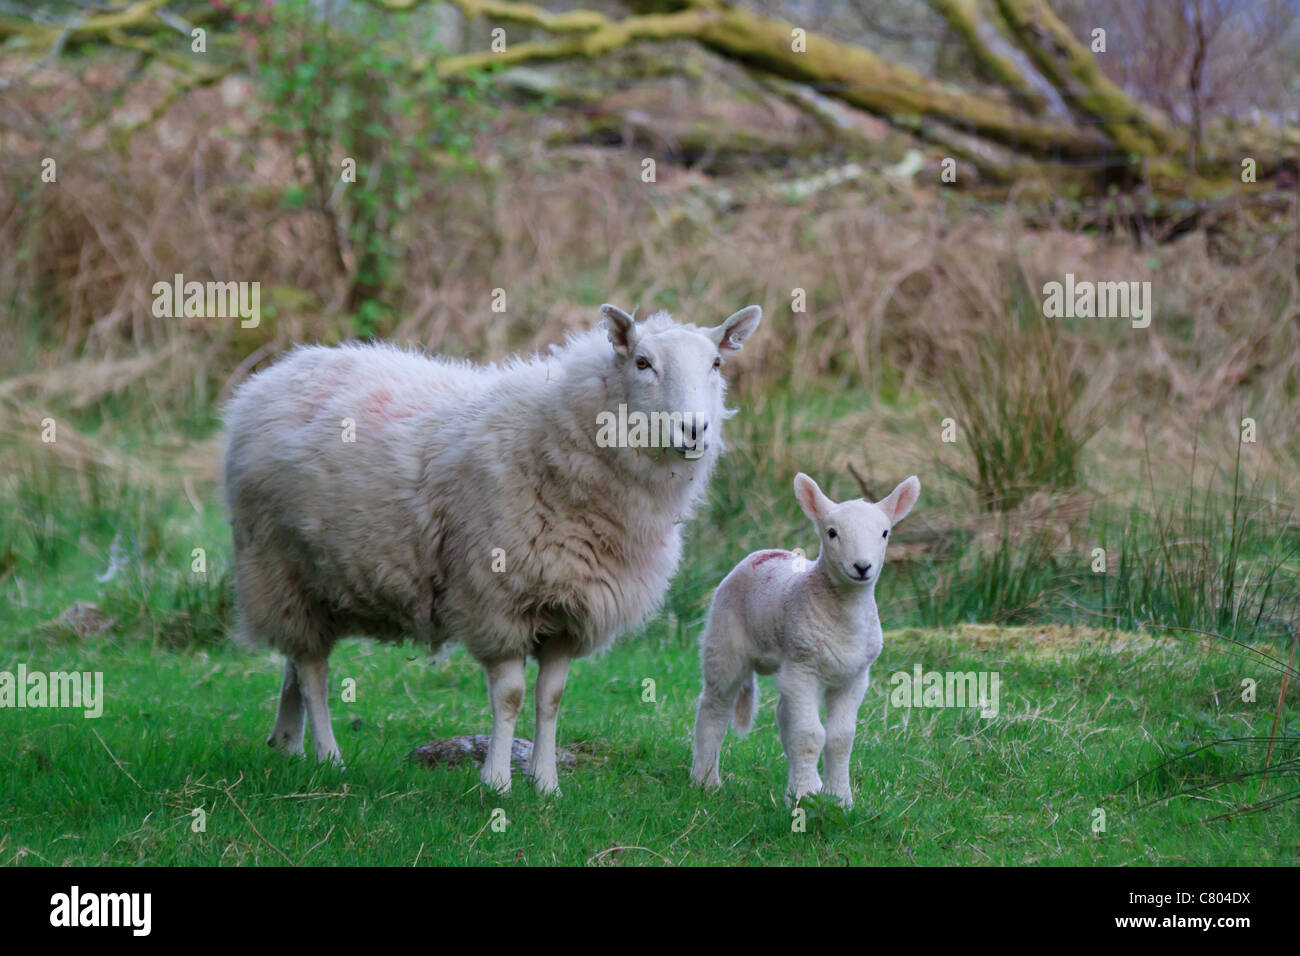 Spring lamb and ewe standing in a field (Ovis aries) - Stock Image